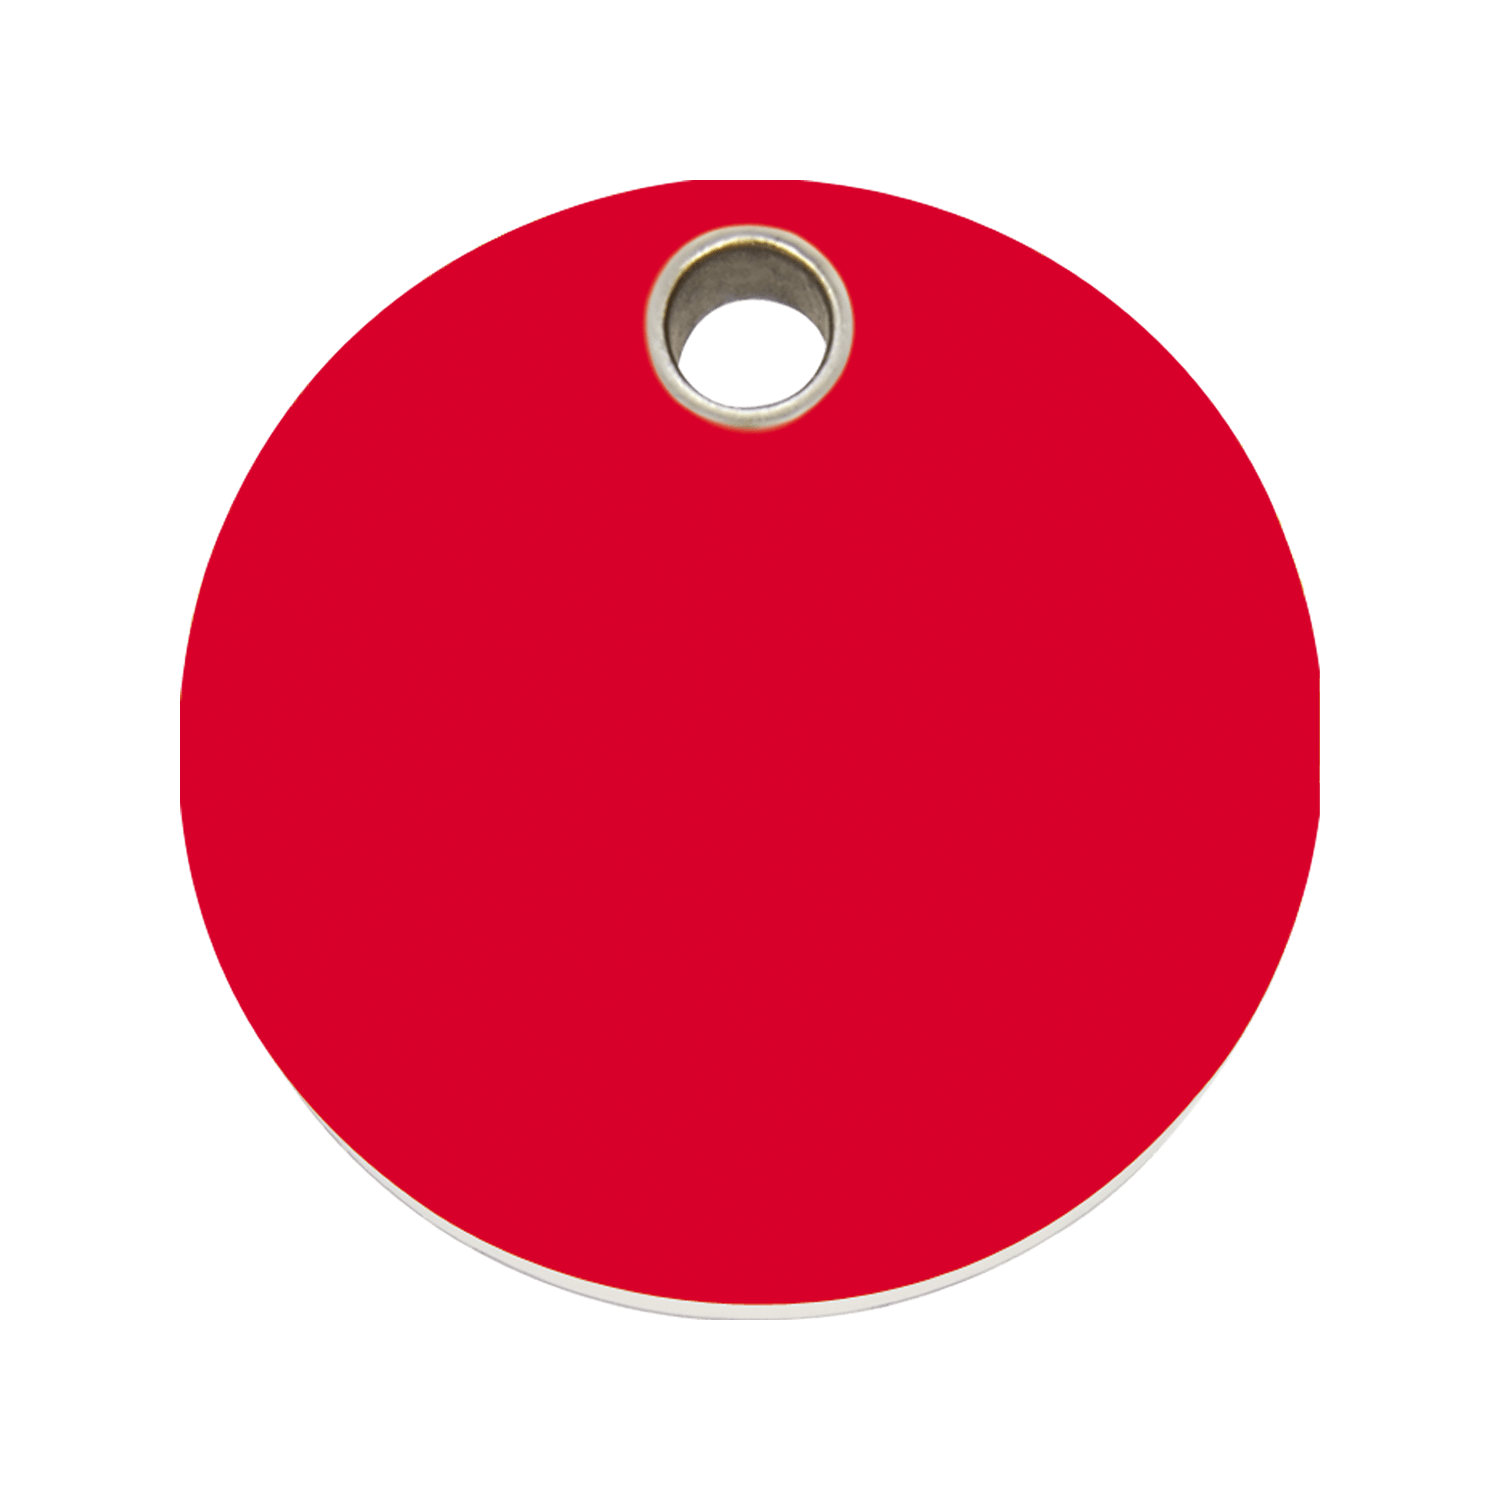 Red Dingo Plastic Tag Circle Red 04 Cl Re 4clrs 4clrm